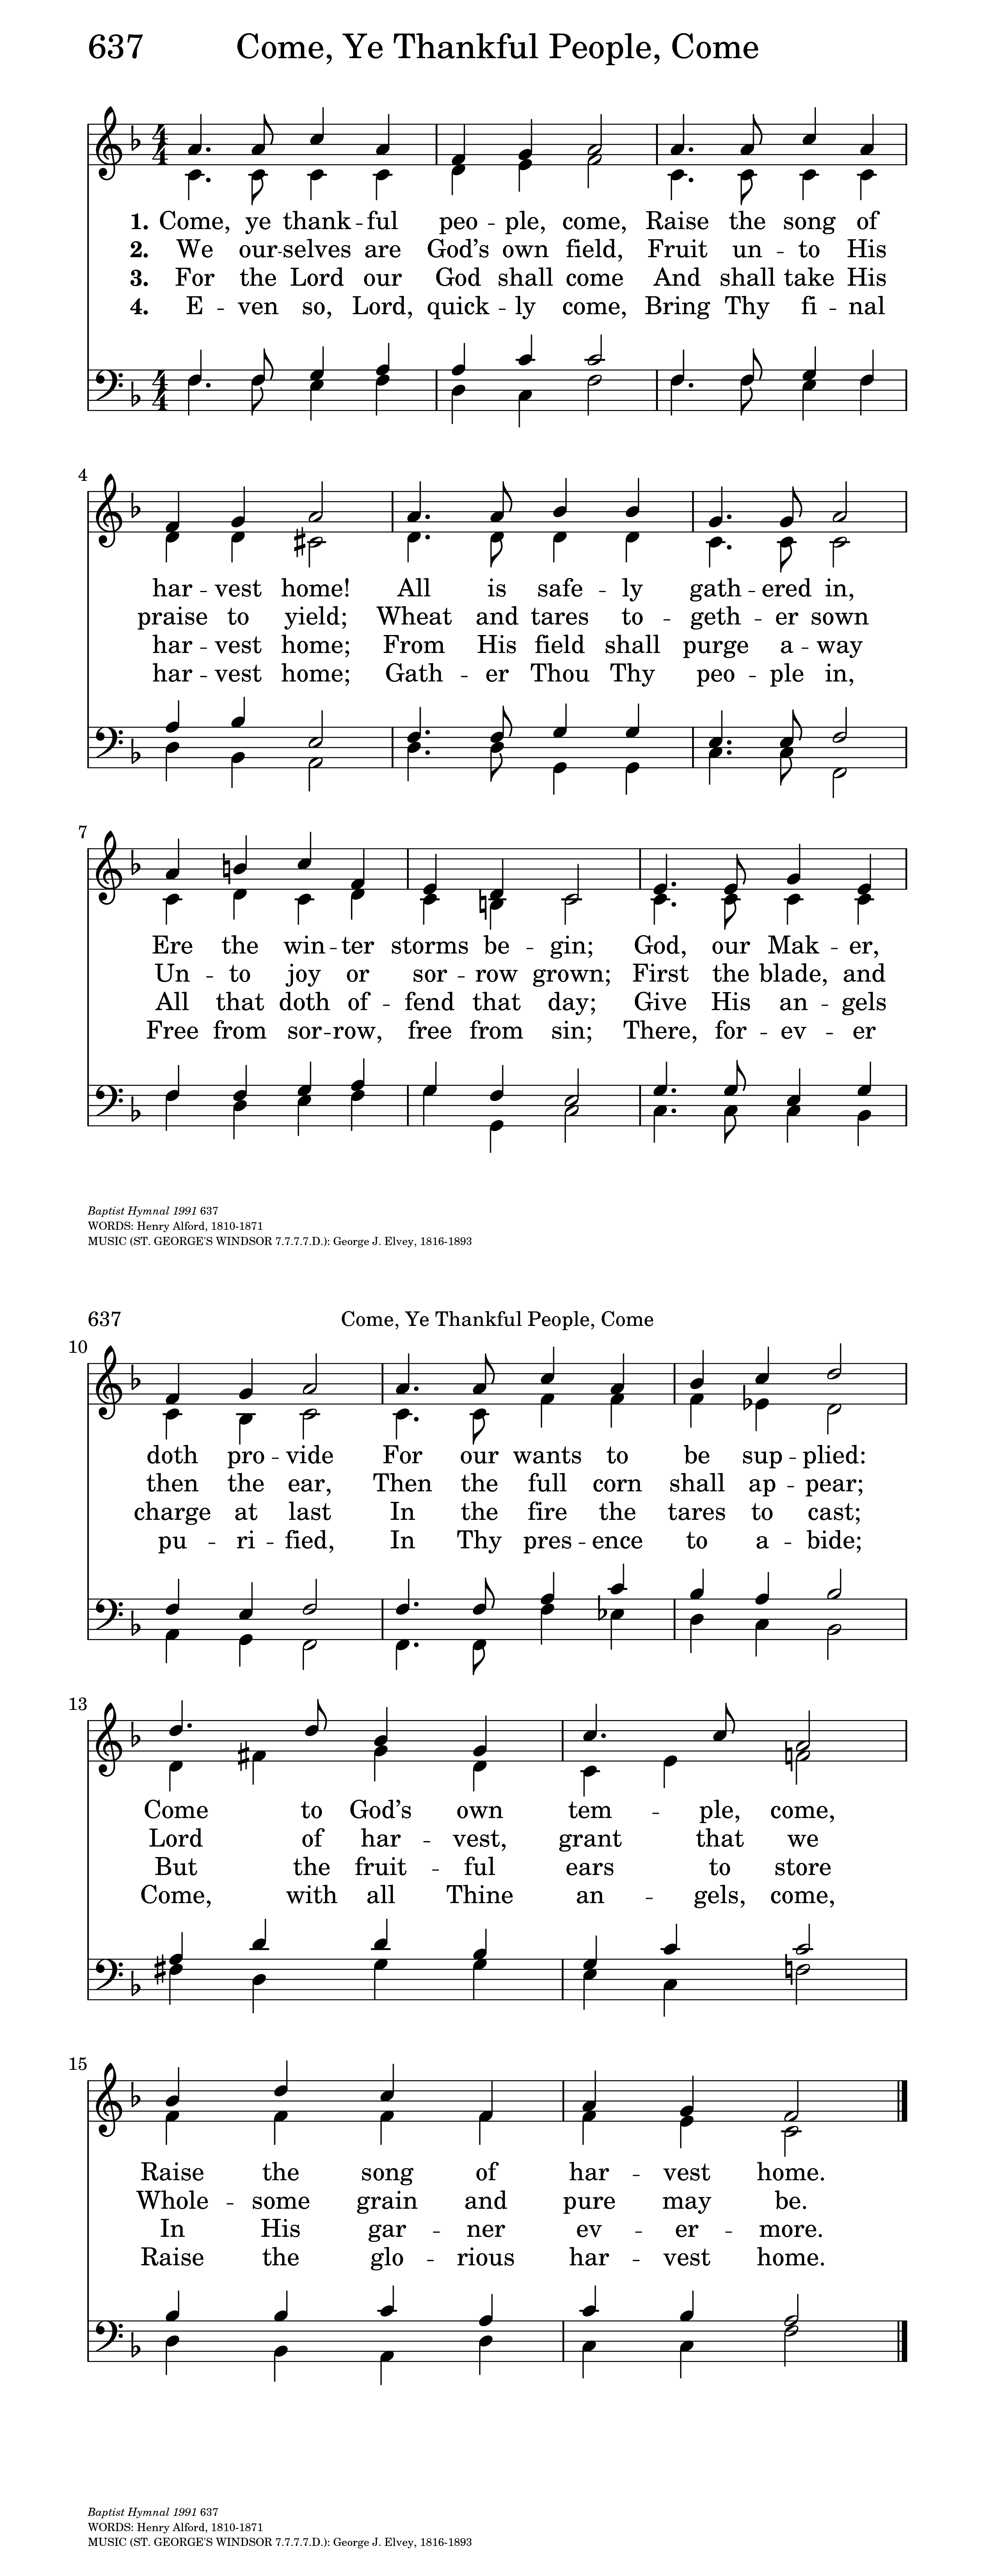 Come Ye Thankful People Come Hymnary